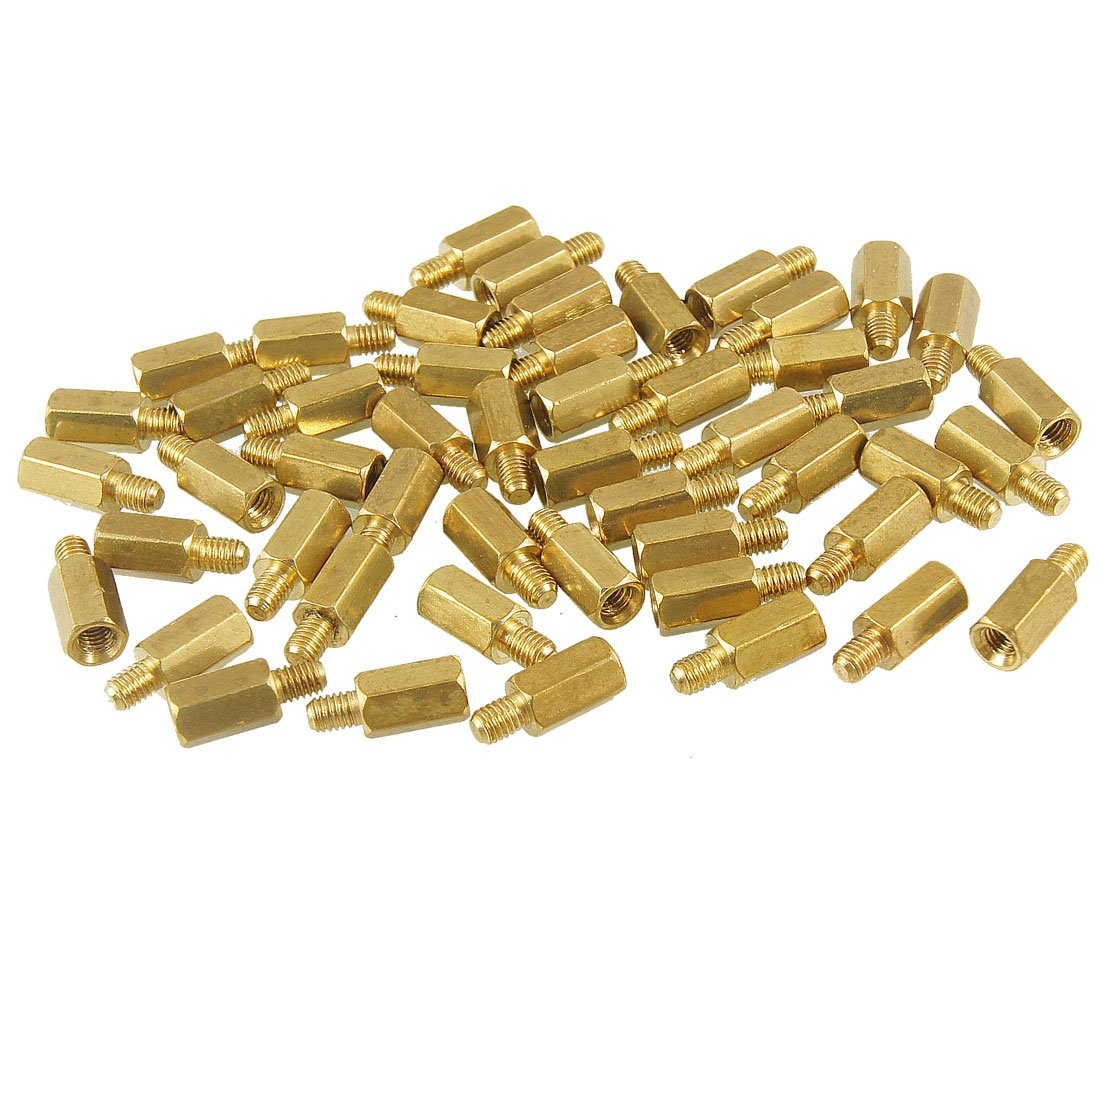 NFLC M3 Male x M3 Female 8mm Long Hexagonal Brass PCB Standoffs Spacers 50 Pcs nflc 20 pcs m3 male x m3 female hexagonal thread pcb standoff spacer 50mm body length